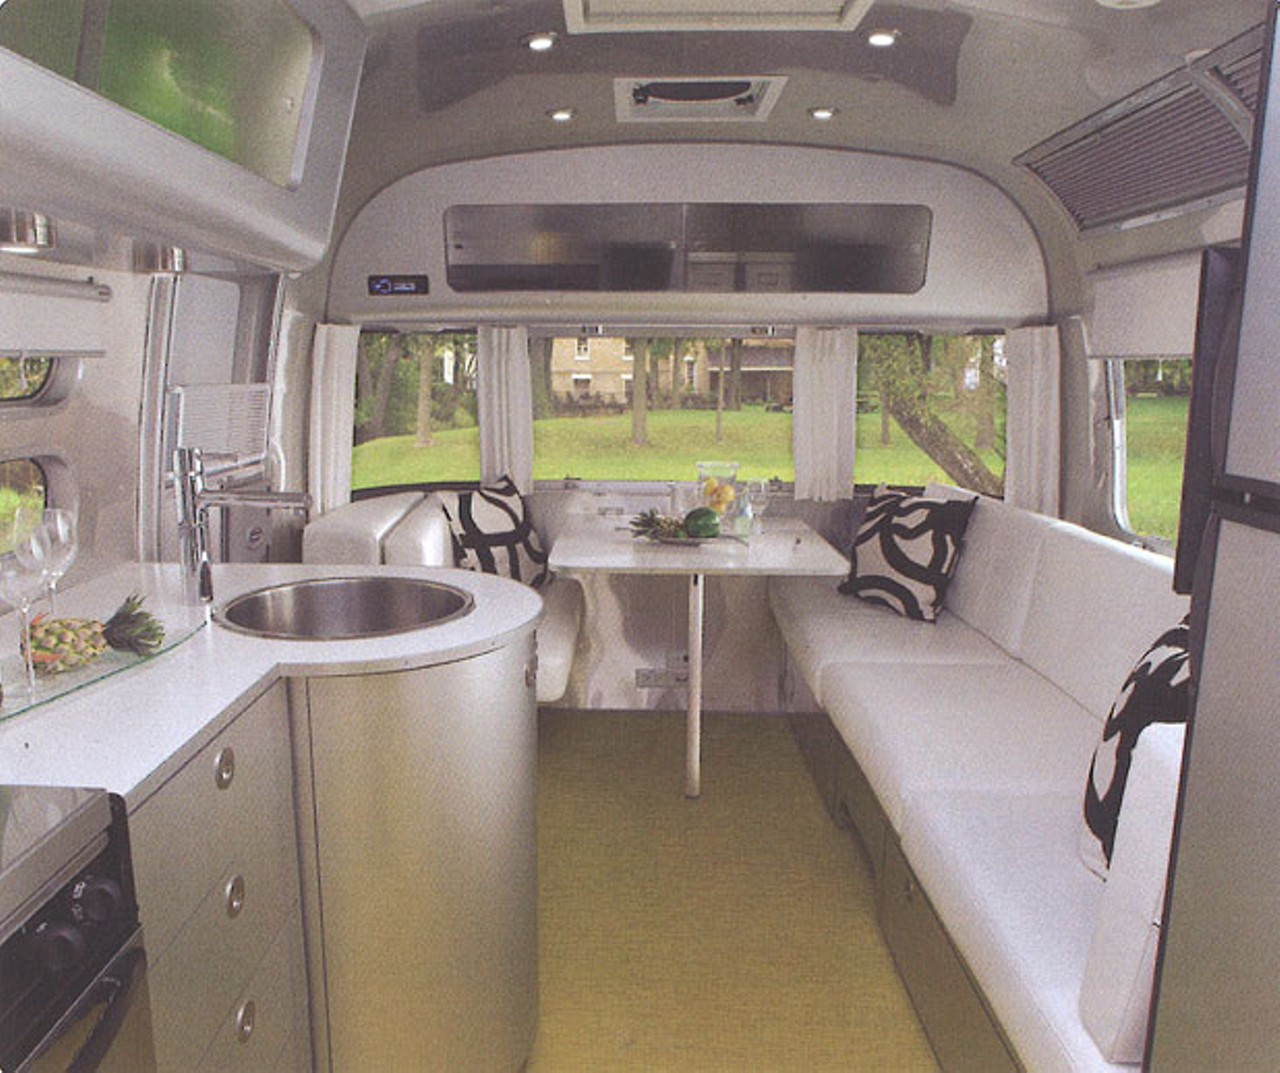 Plattsburghs Nomad Airstream Is King Of The Trailers